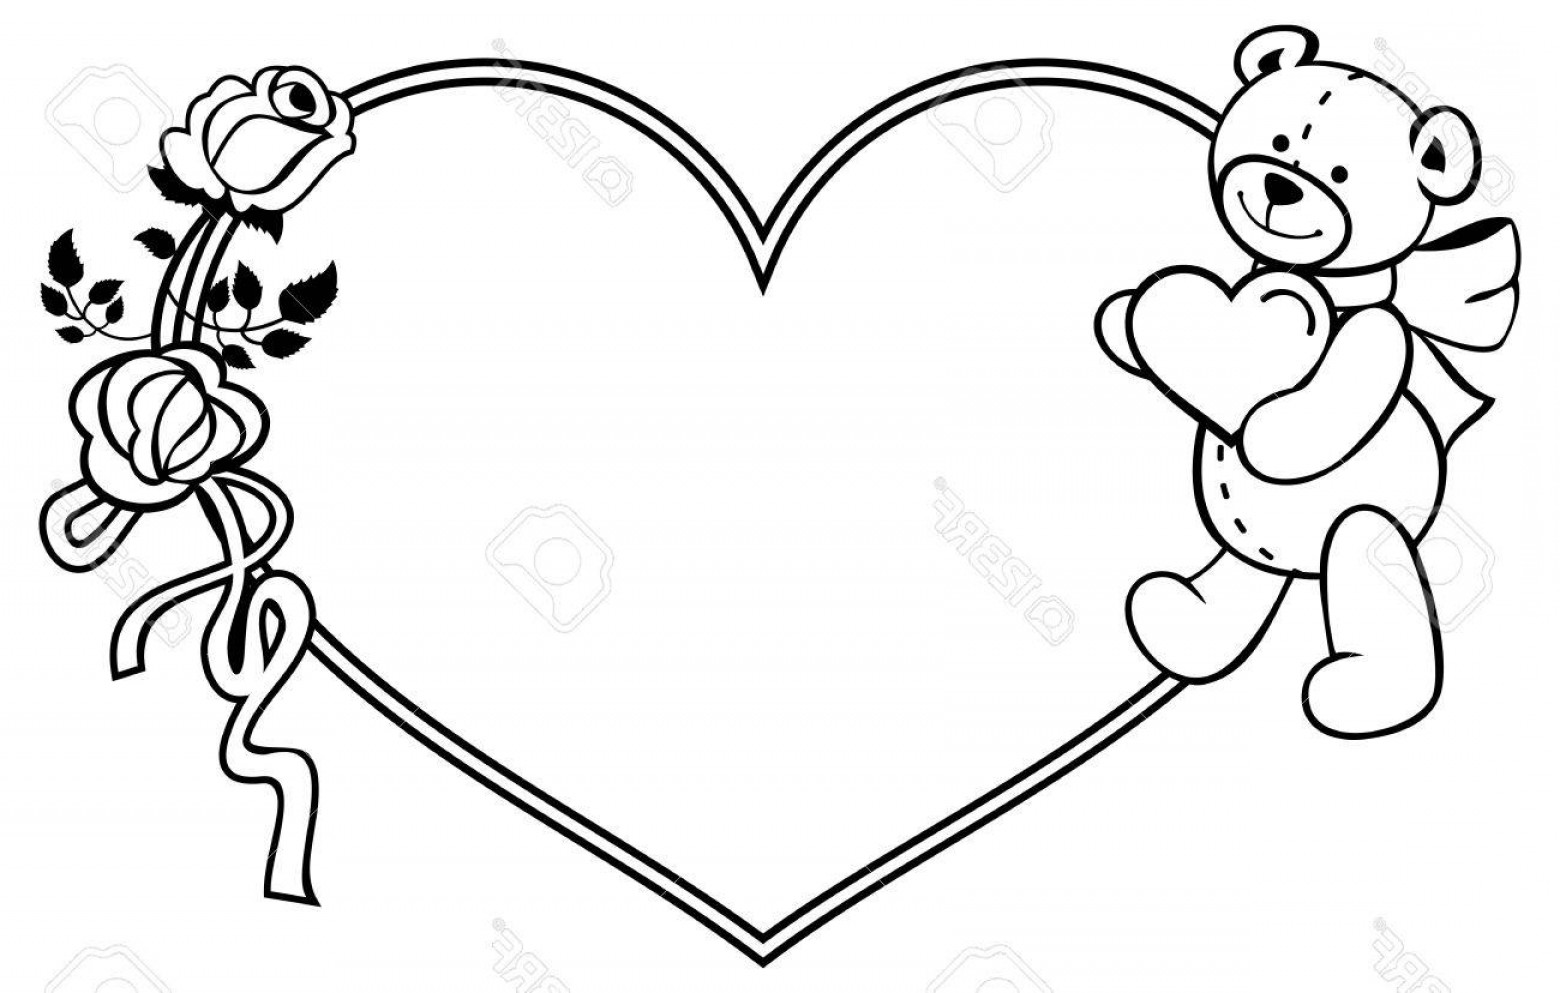 Bear with heart clipart black and white graphic freeuse Photostock Vector Heart Shaped Frame With Outline Roses Teddy Bear ... graphic freeuse